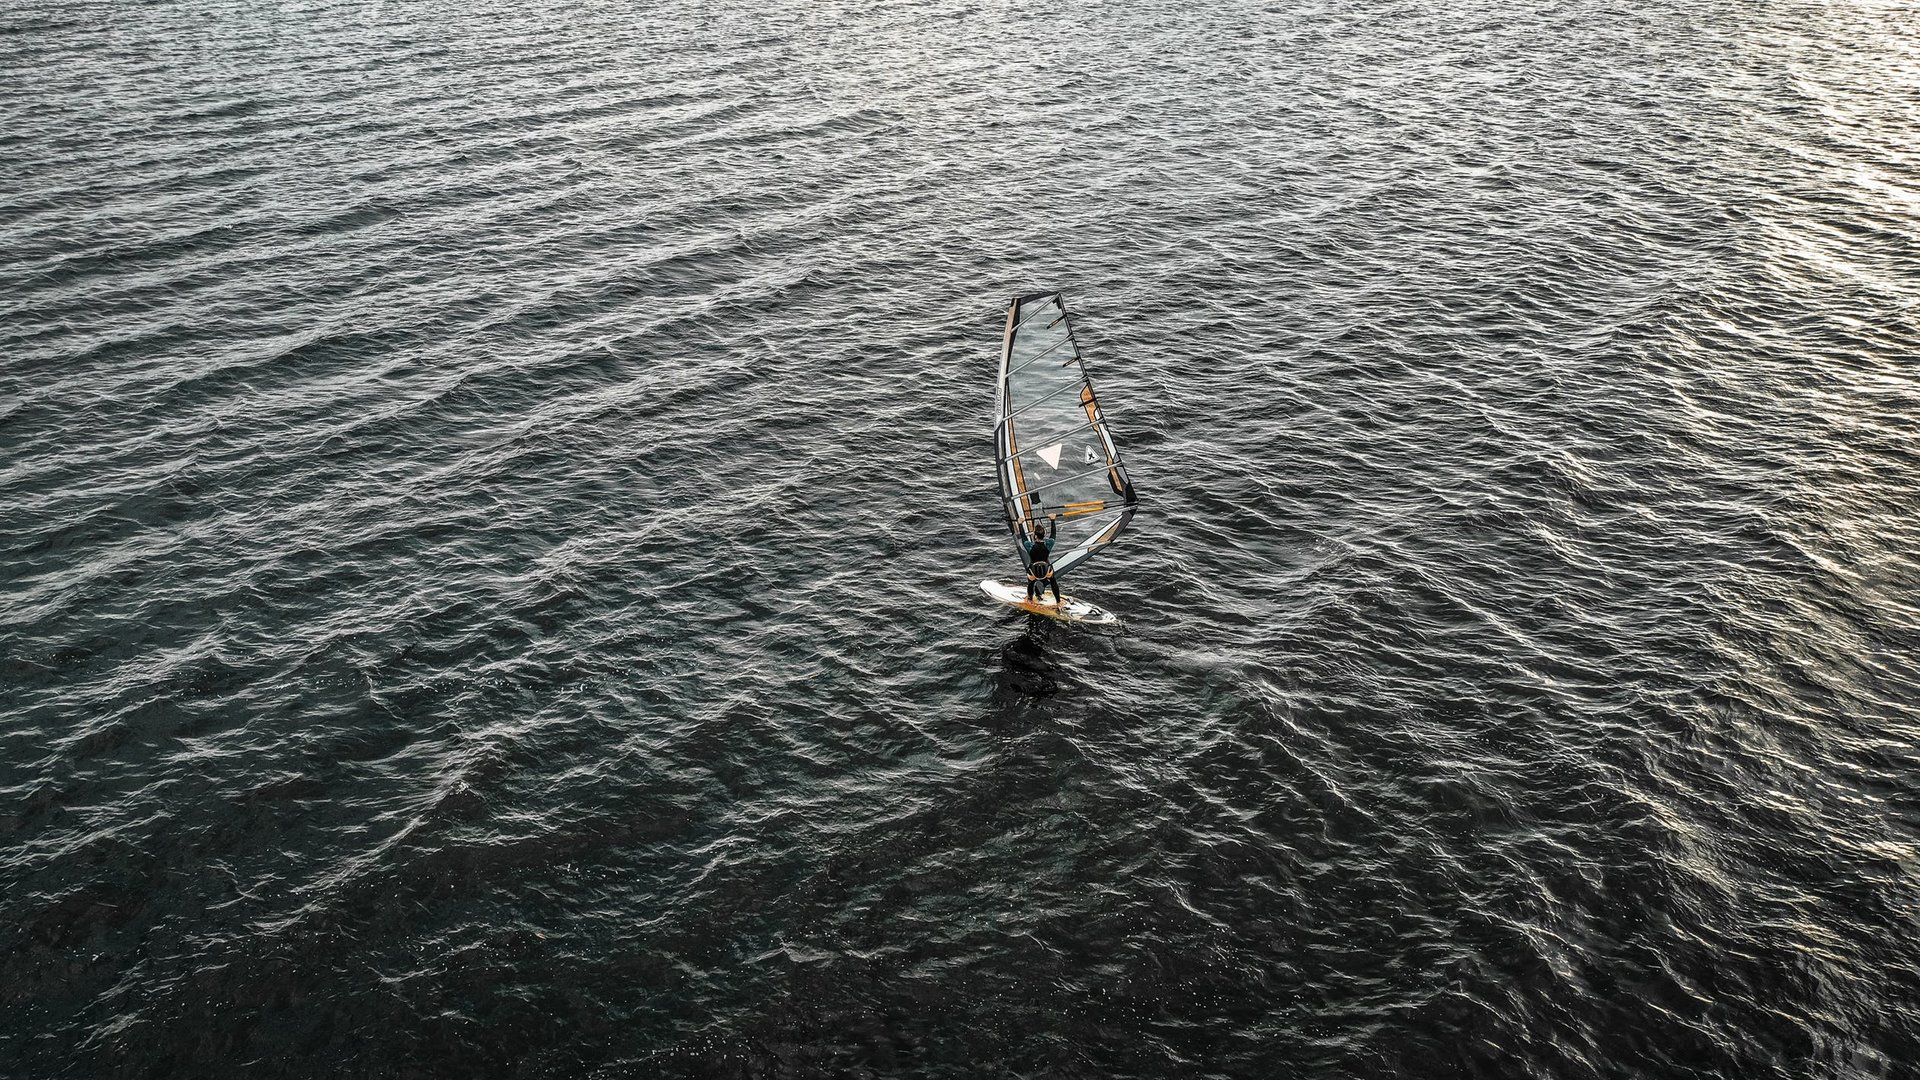 Windsurfing in Madrid 2020 - Best Time